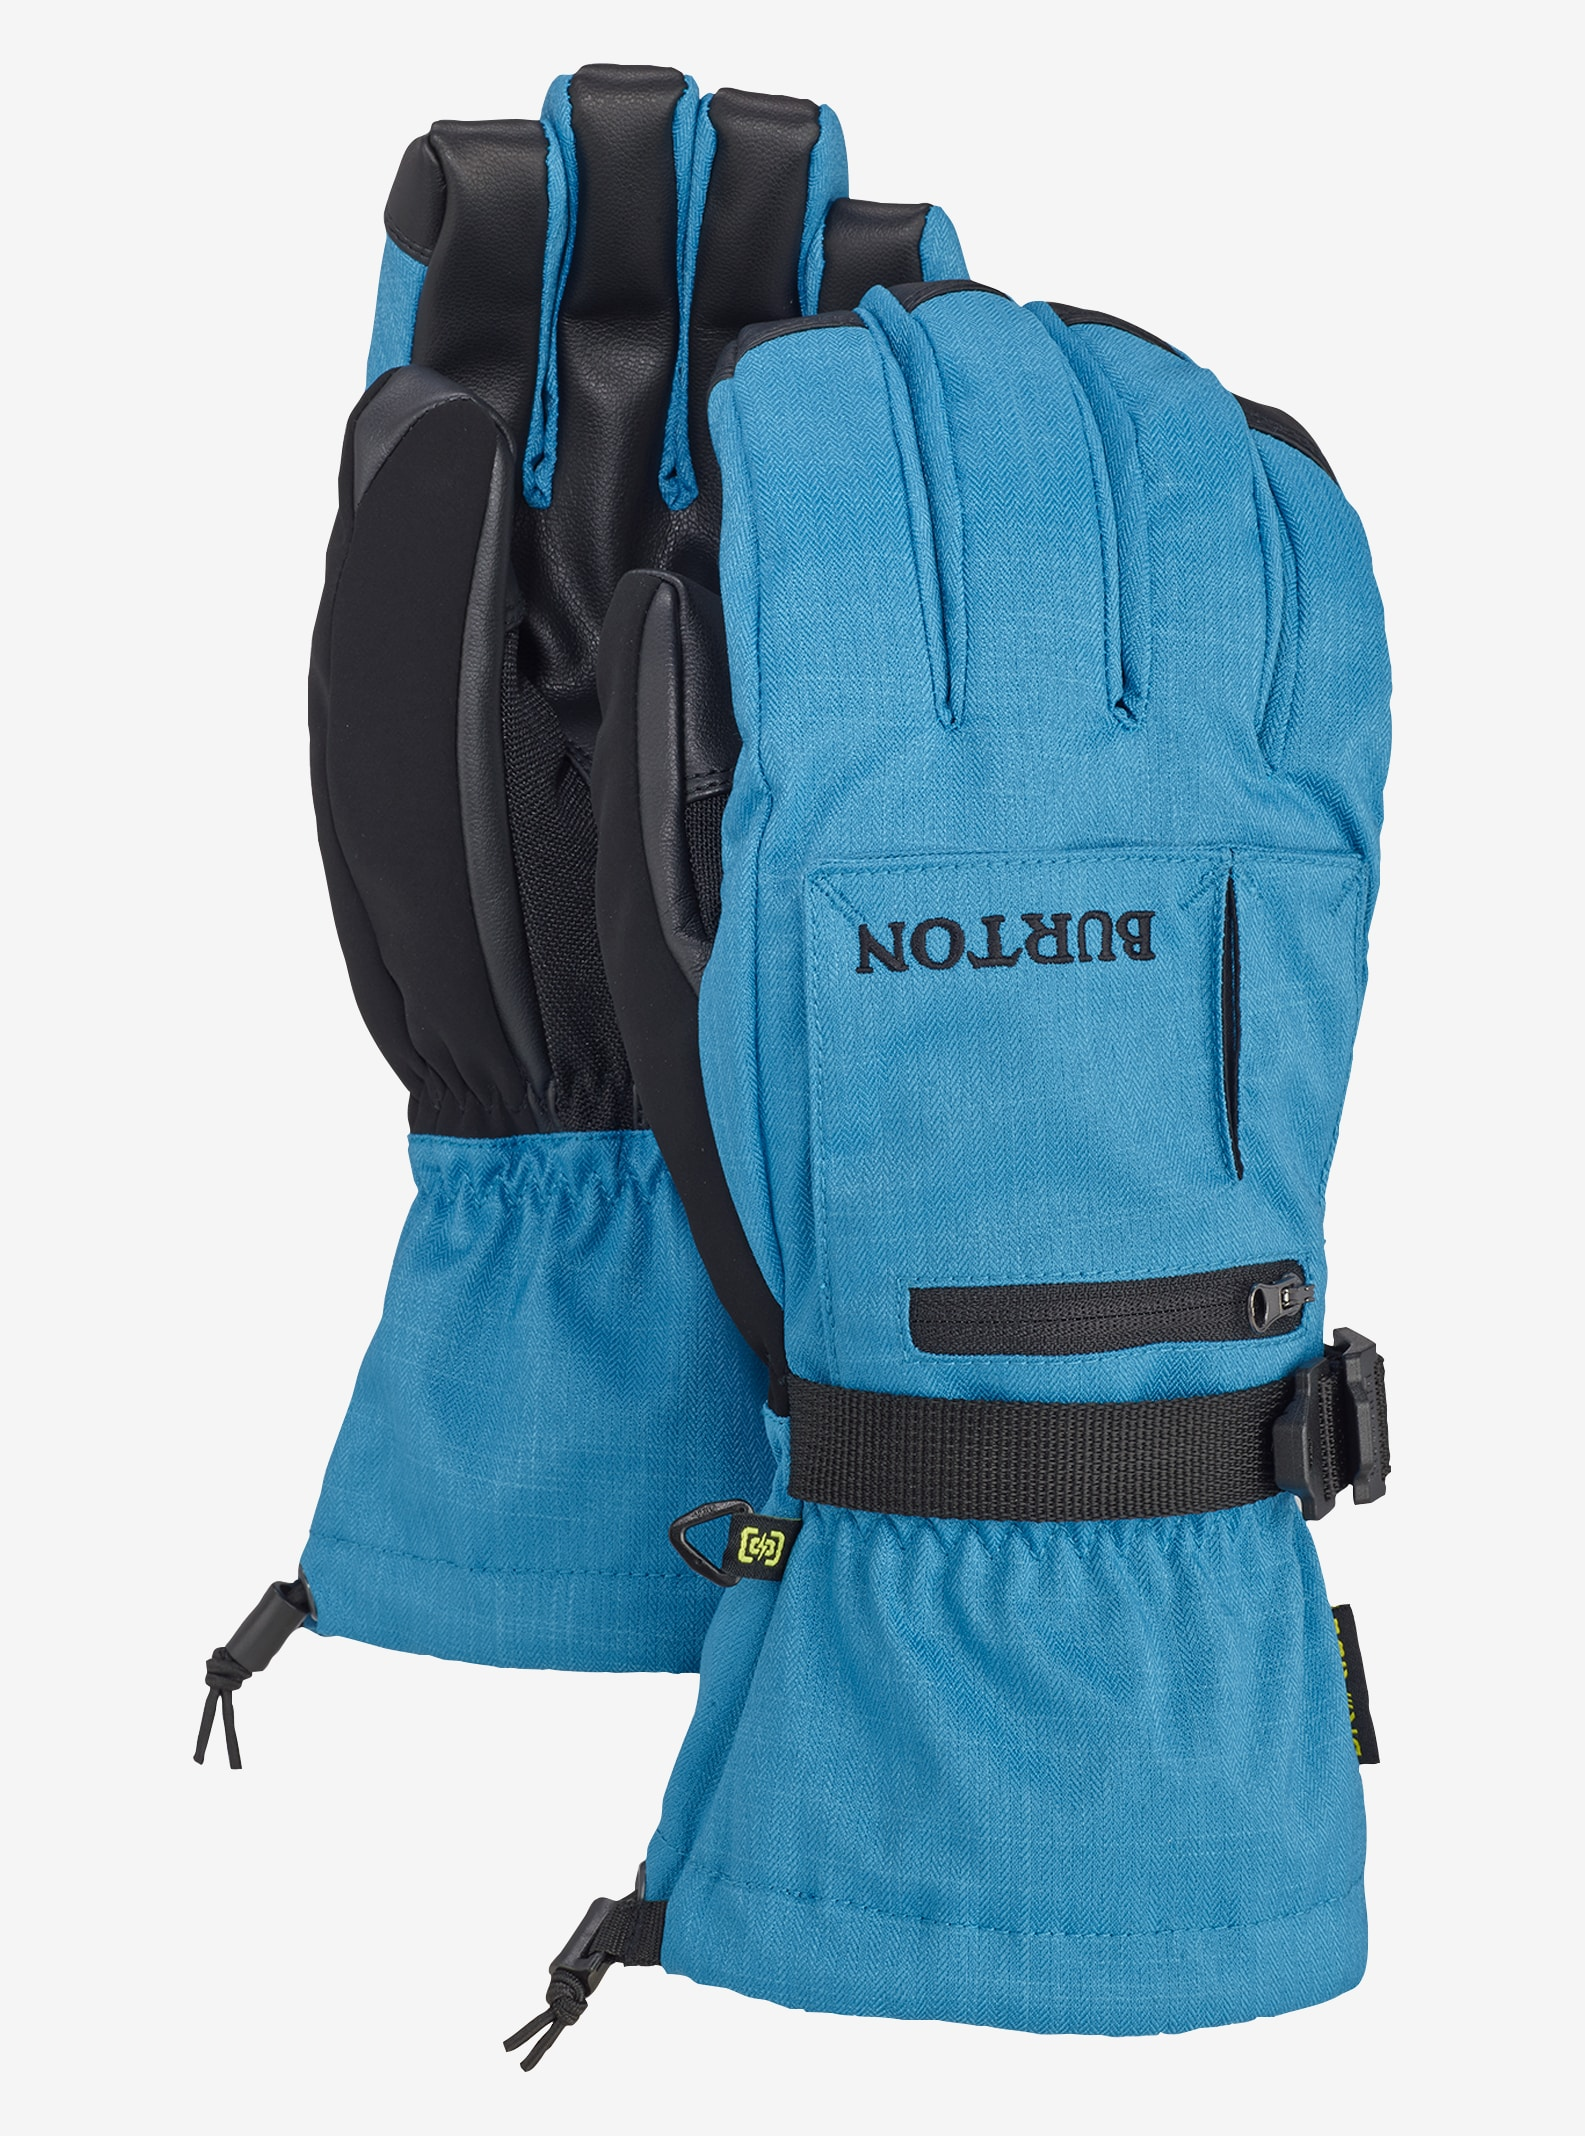 Men's Burton Baker 2-In-1 Glove shown in Mountaineer